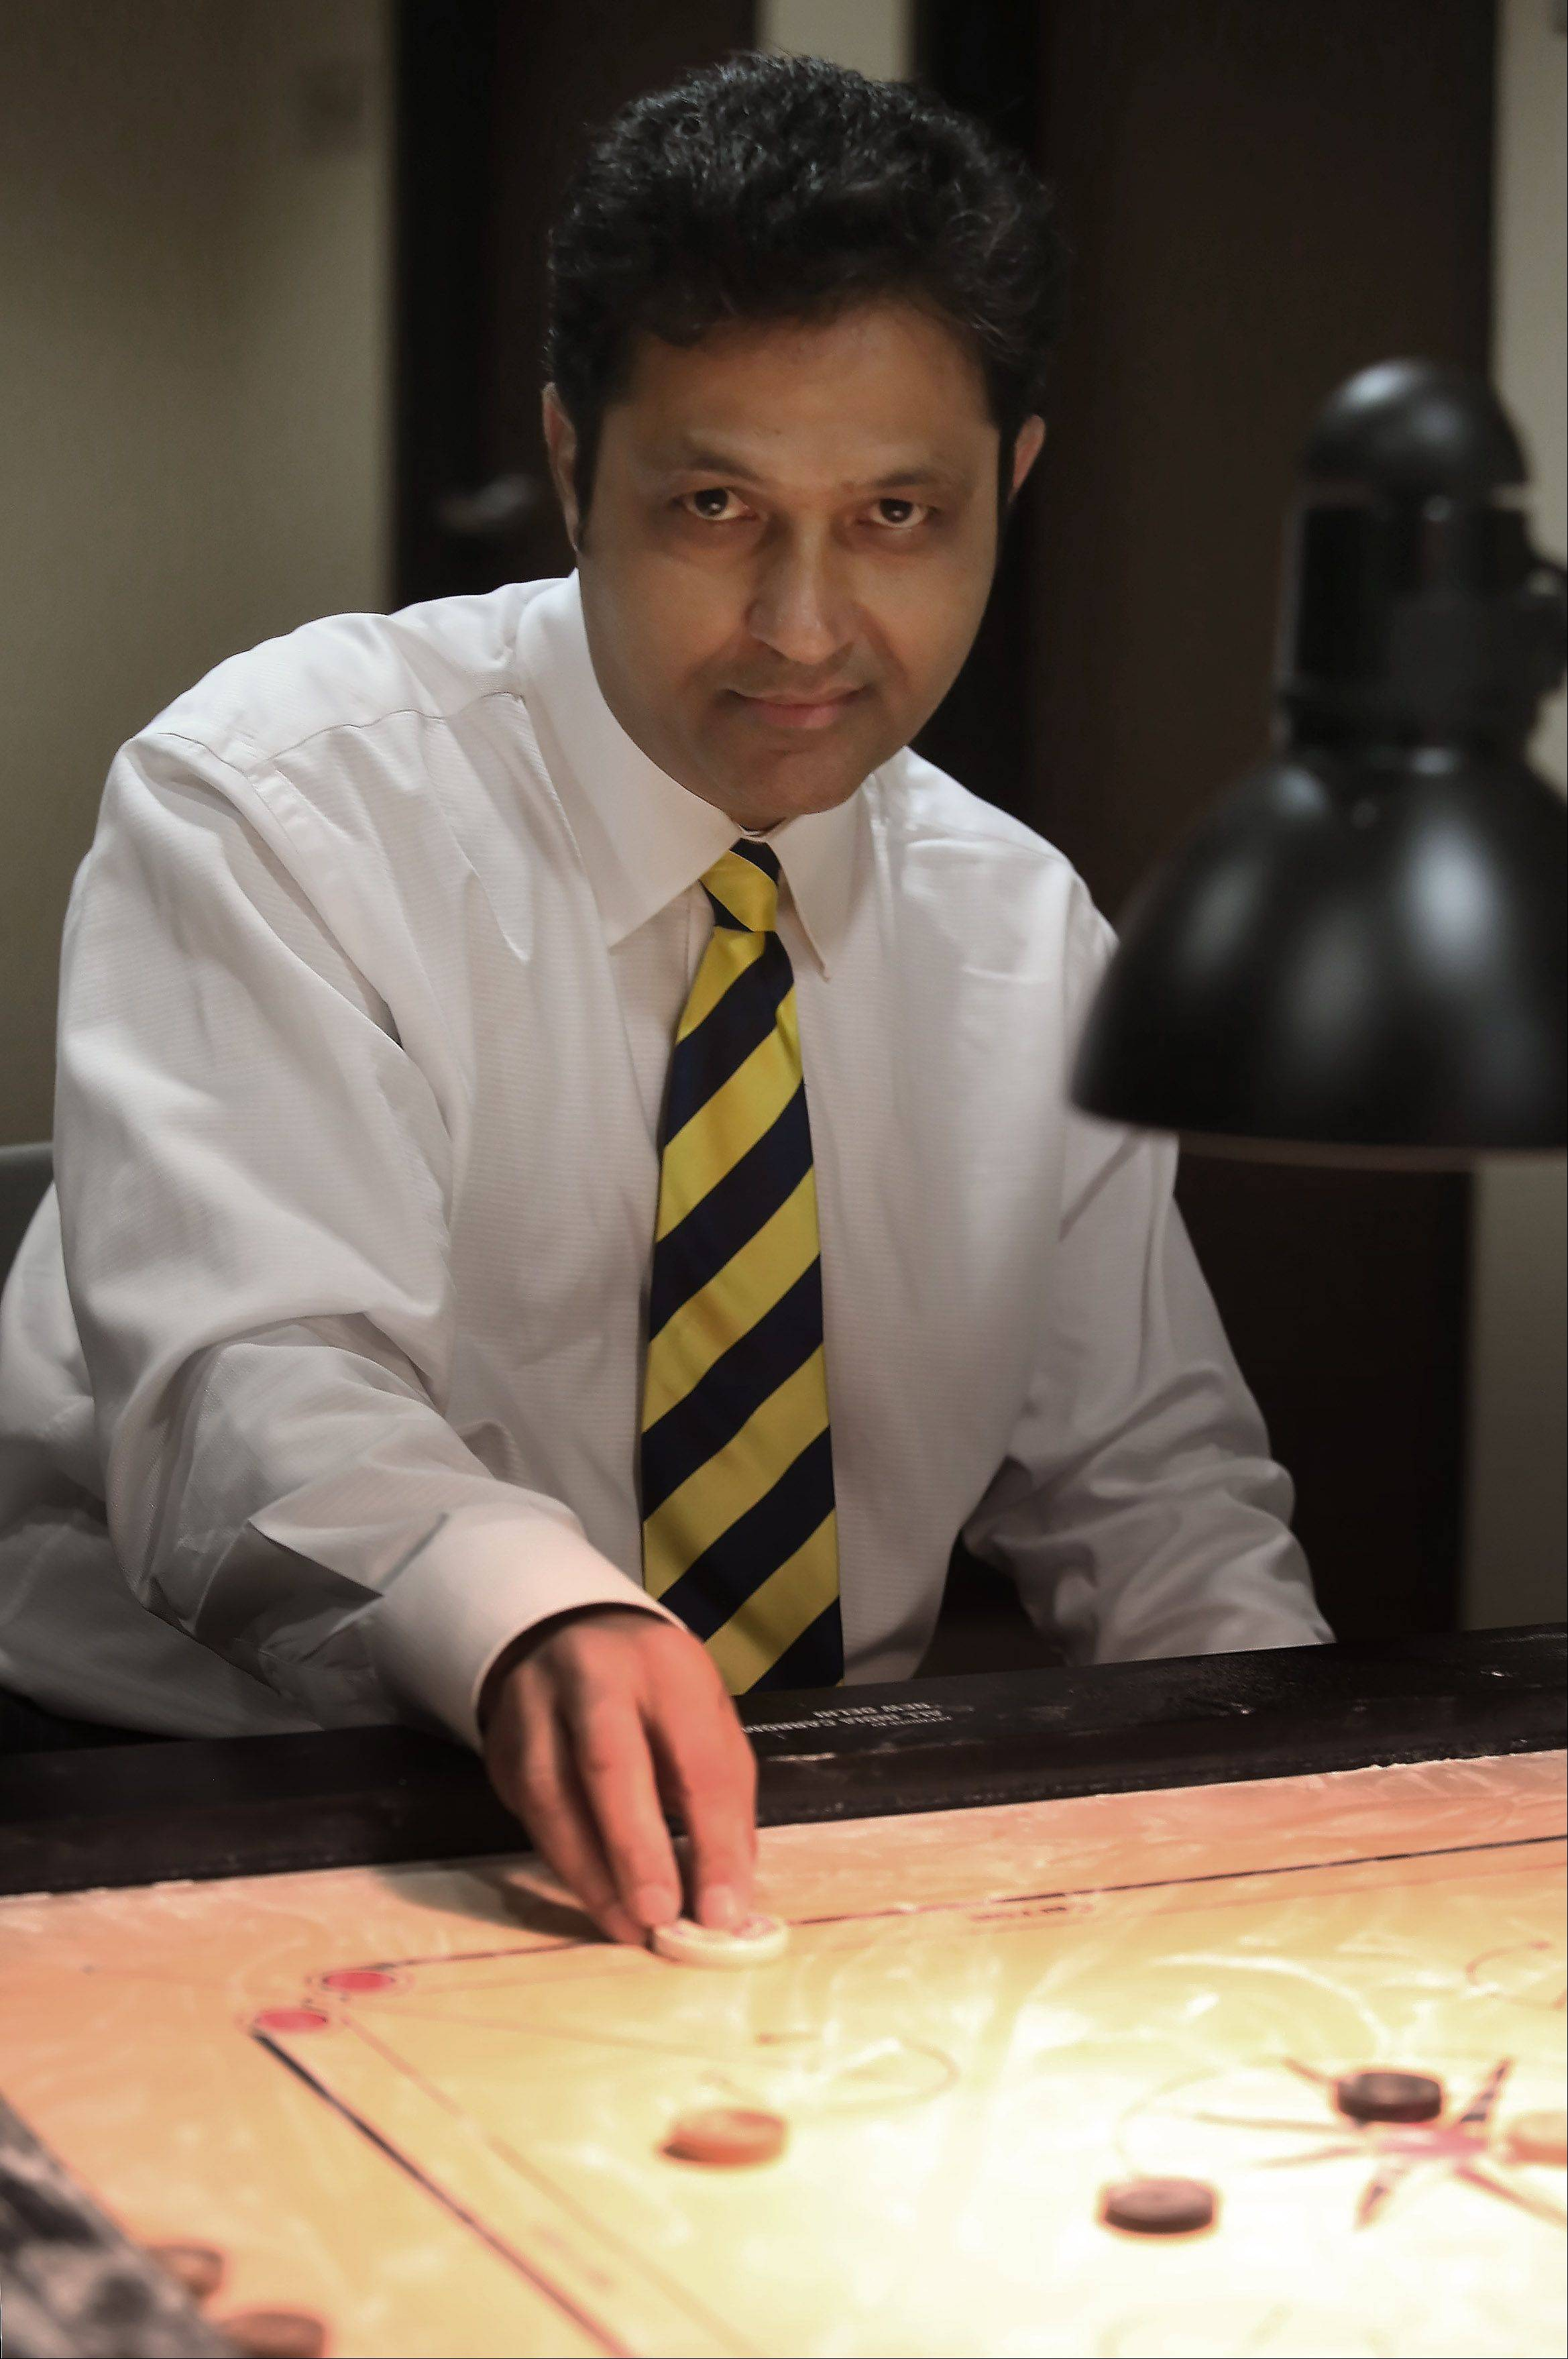 Vista Health oncologist Dr. Nilesh Mehta explains the game of carrom, which is similar to pool. Mehta recently won the national doubles championship during a national carrom tournament in Cleveland.